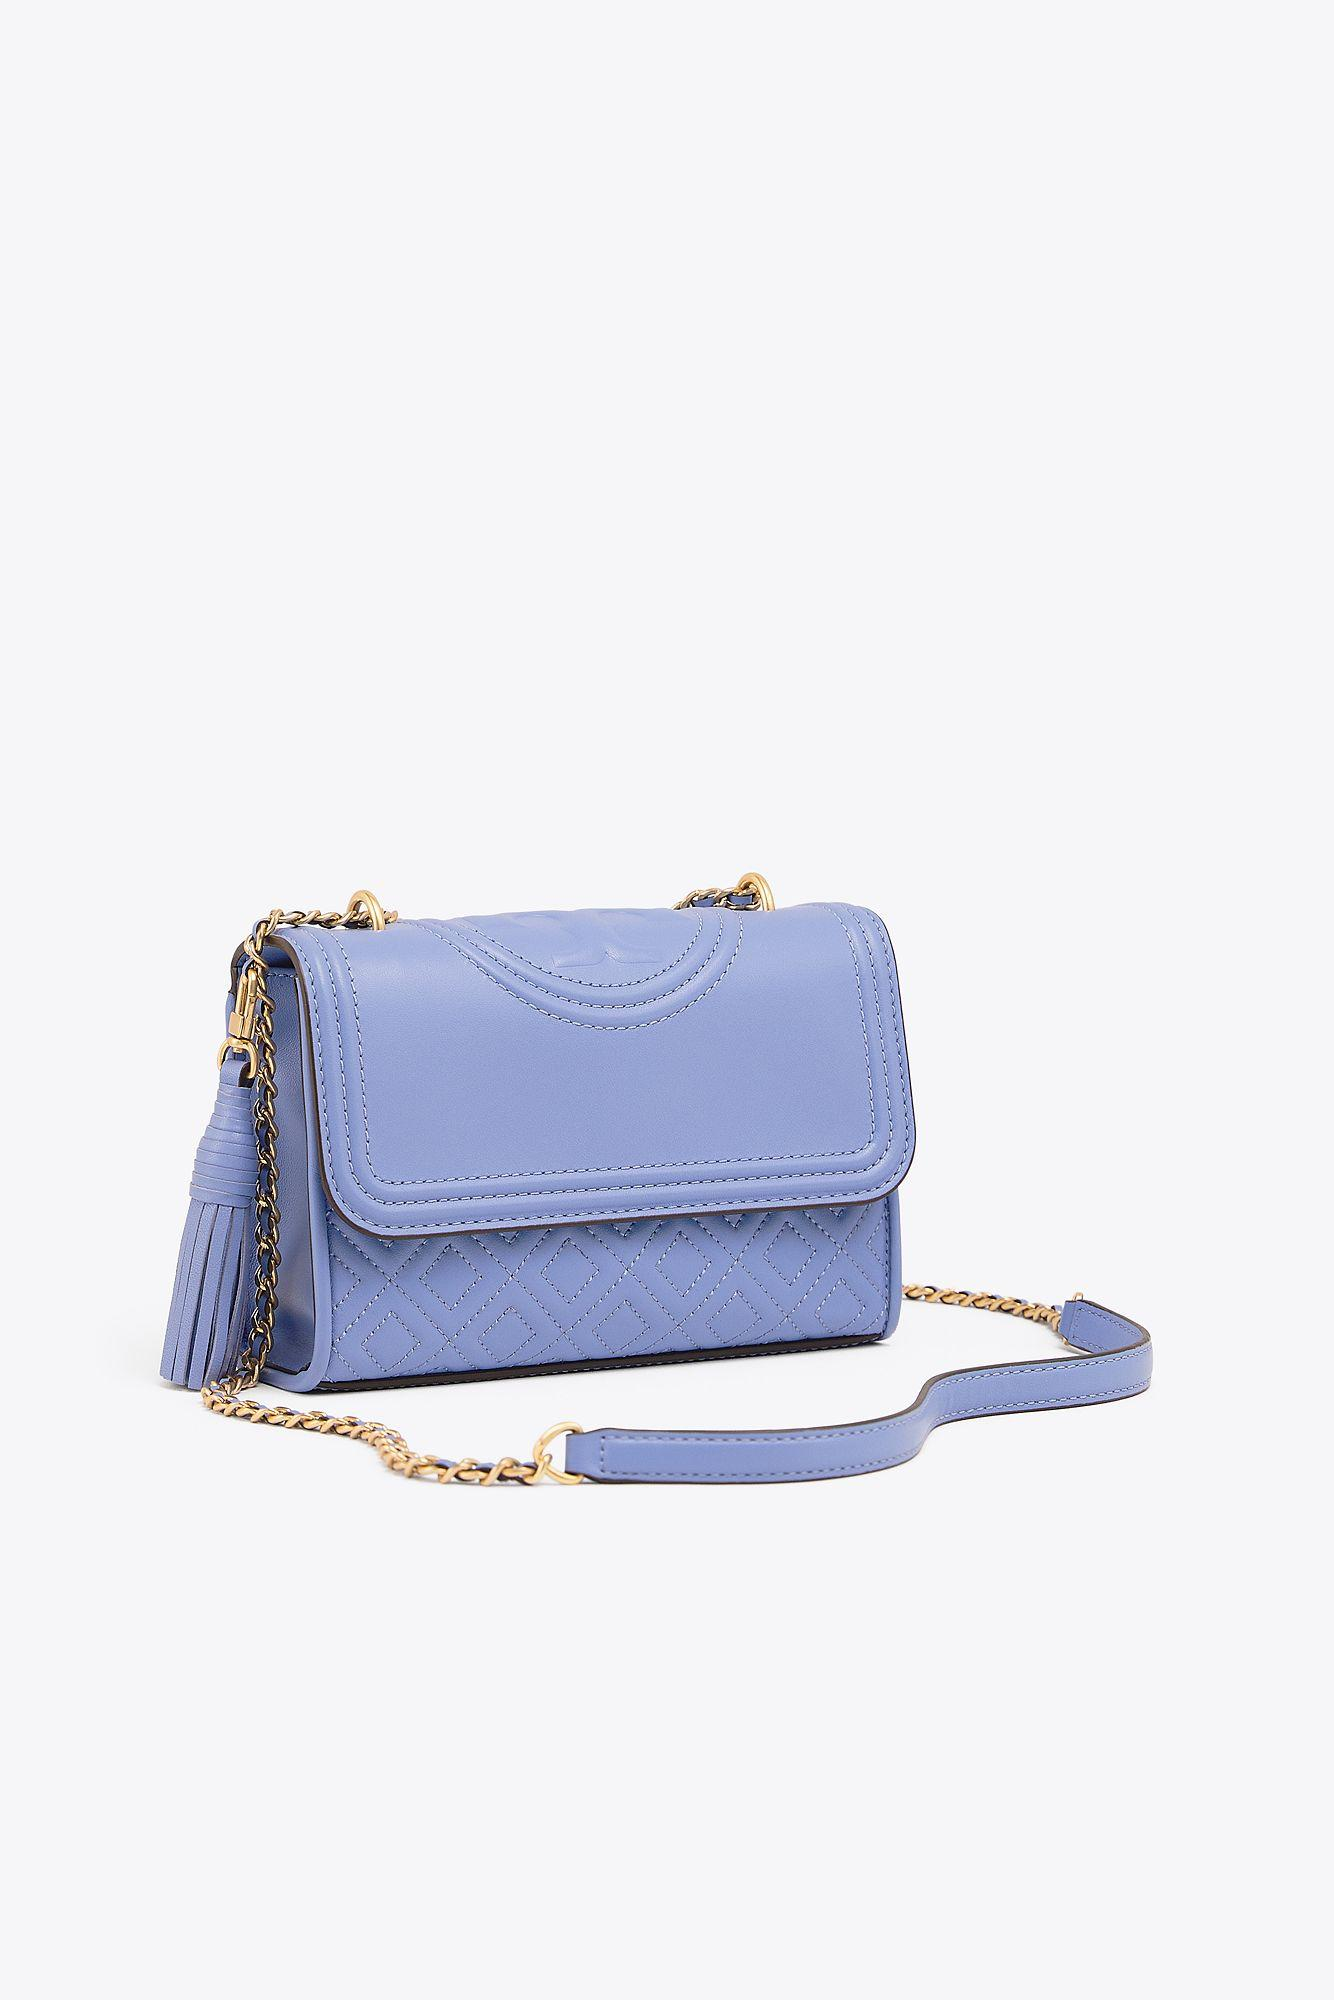 4d6af2197be0 Lyst - Tory Burch Fleming Small Convertible Shoulder Bag in Blue